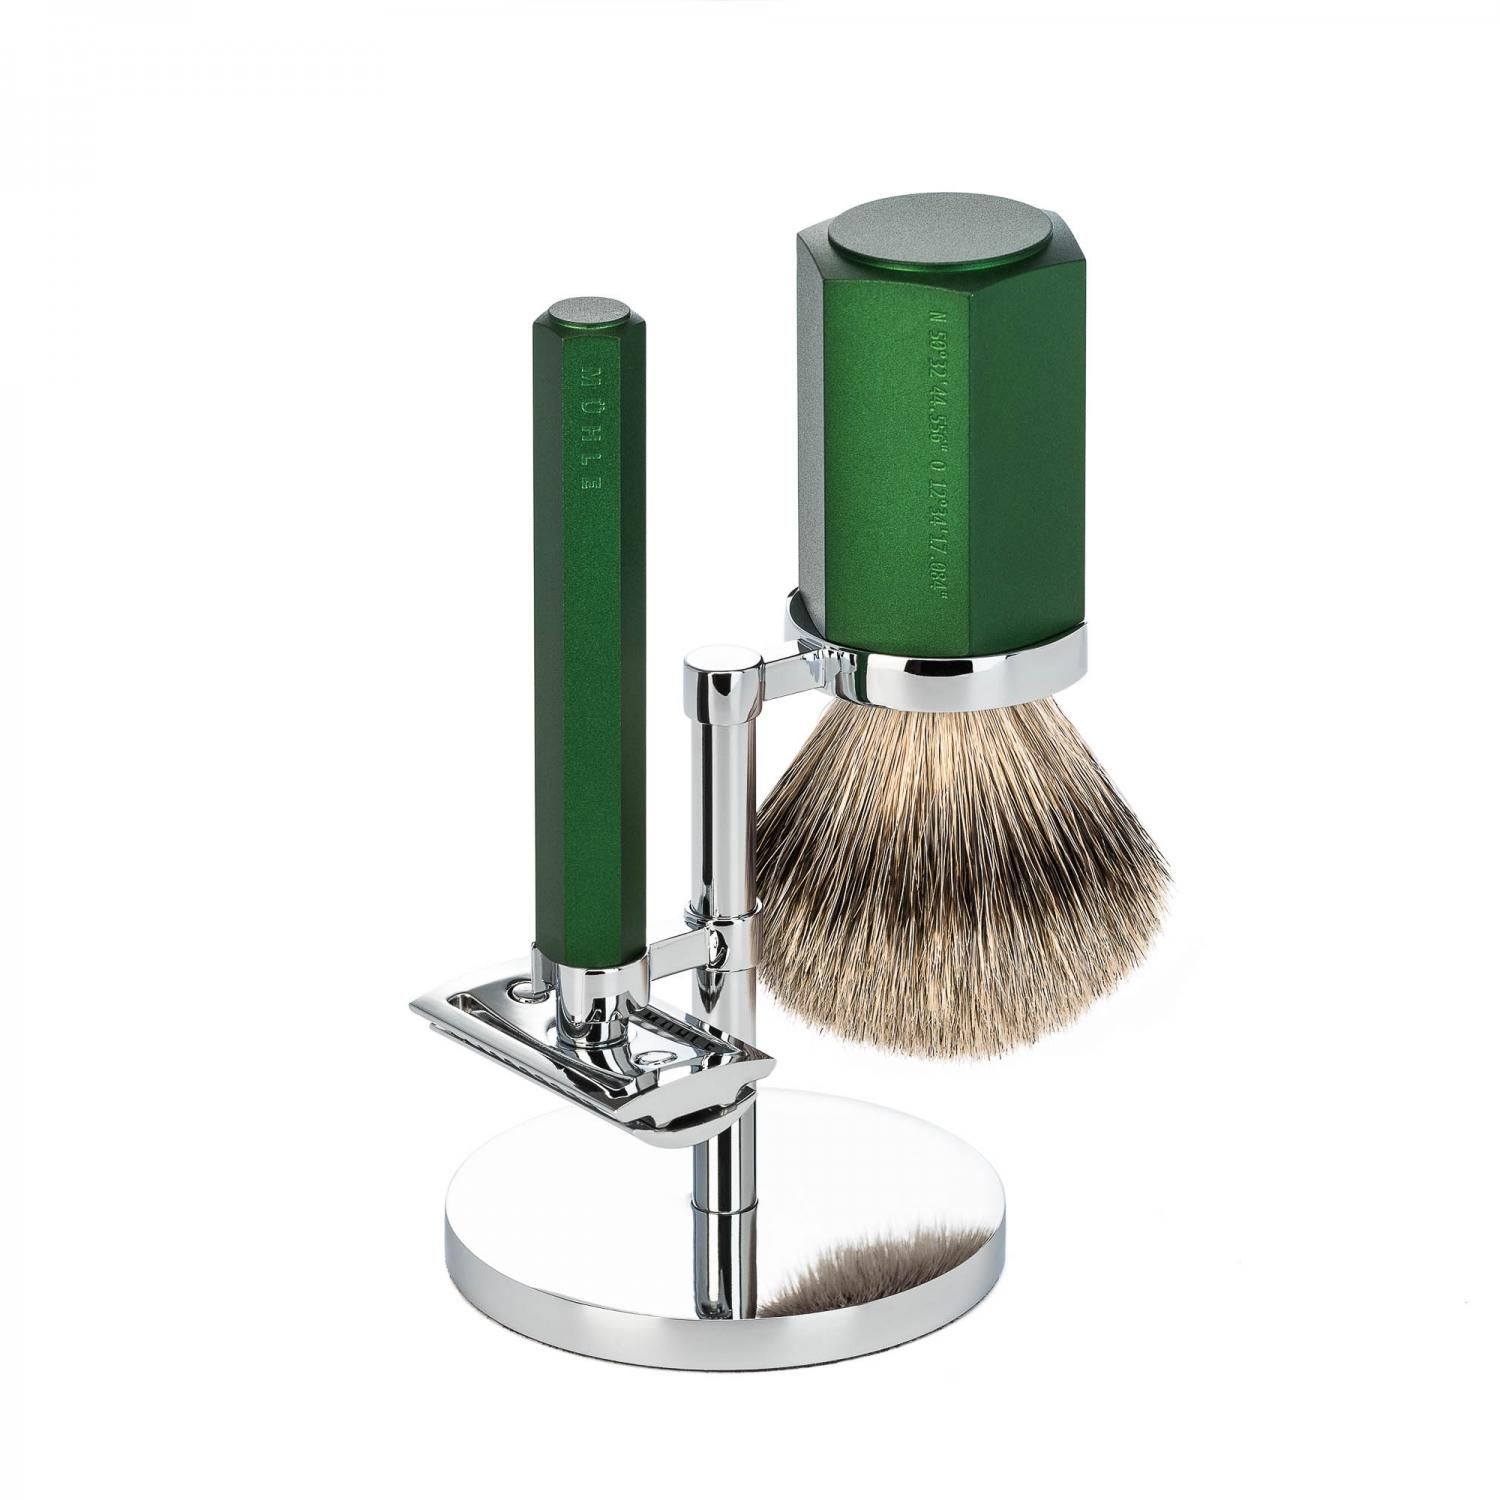 Muhle Hexagon shaving set forest